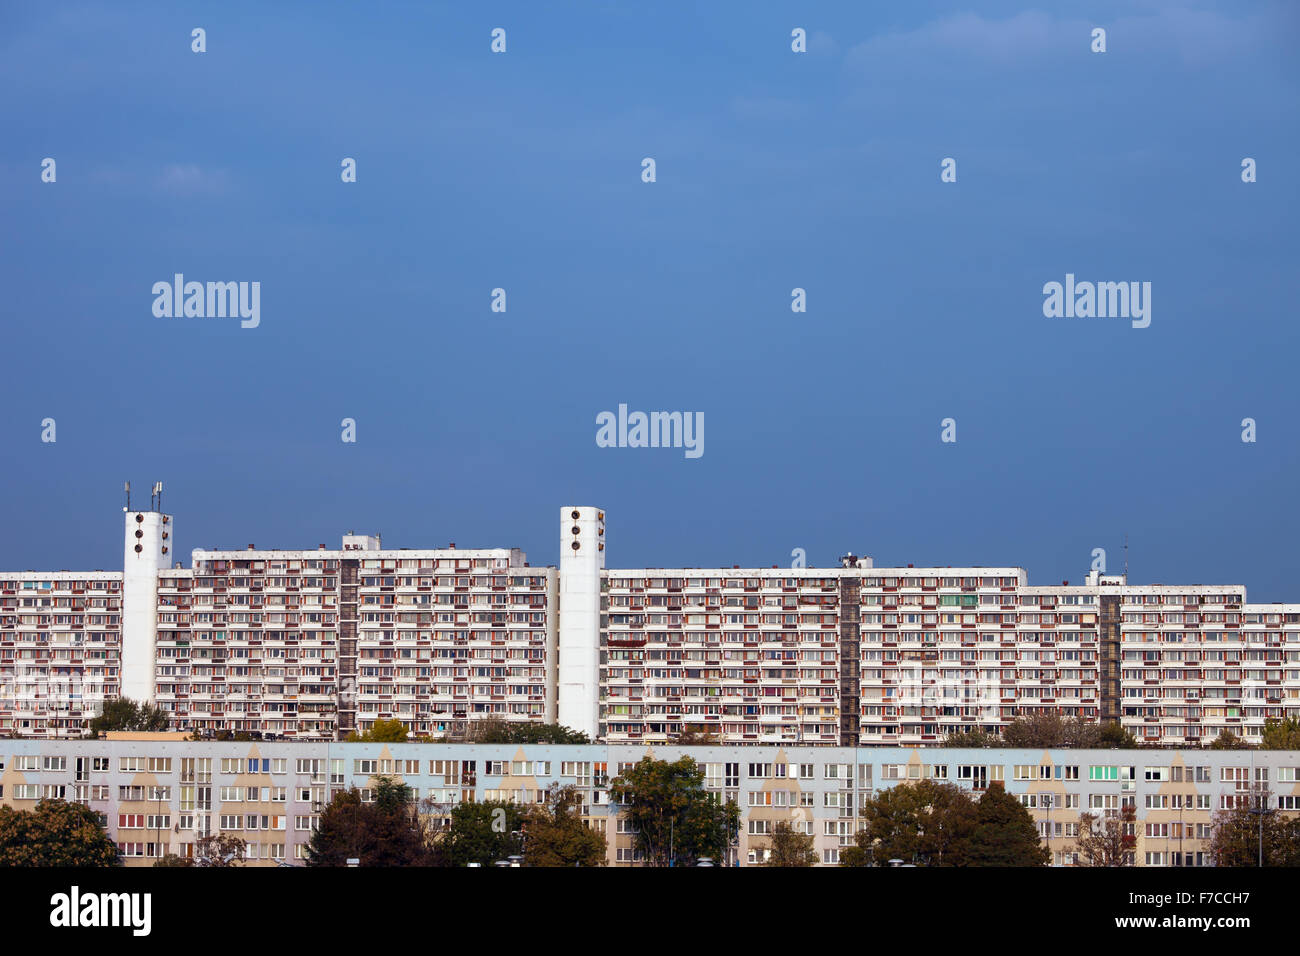 City of Wroclaw, Poland, large blocks of flats, large apartment buildings, condominium, residential architecture. Stock Photo